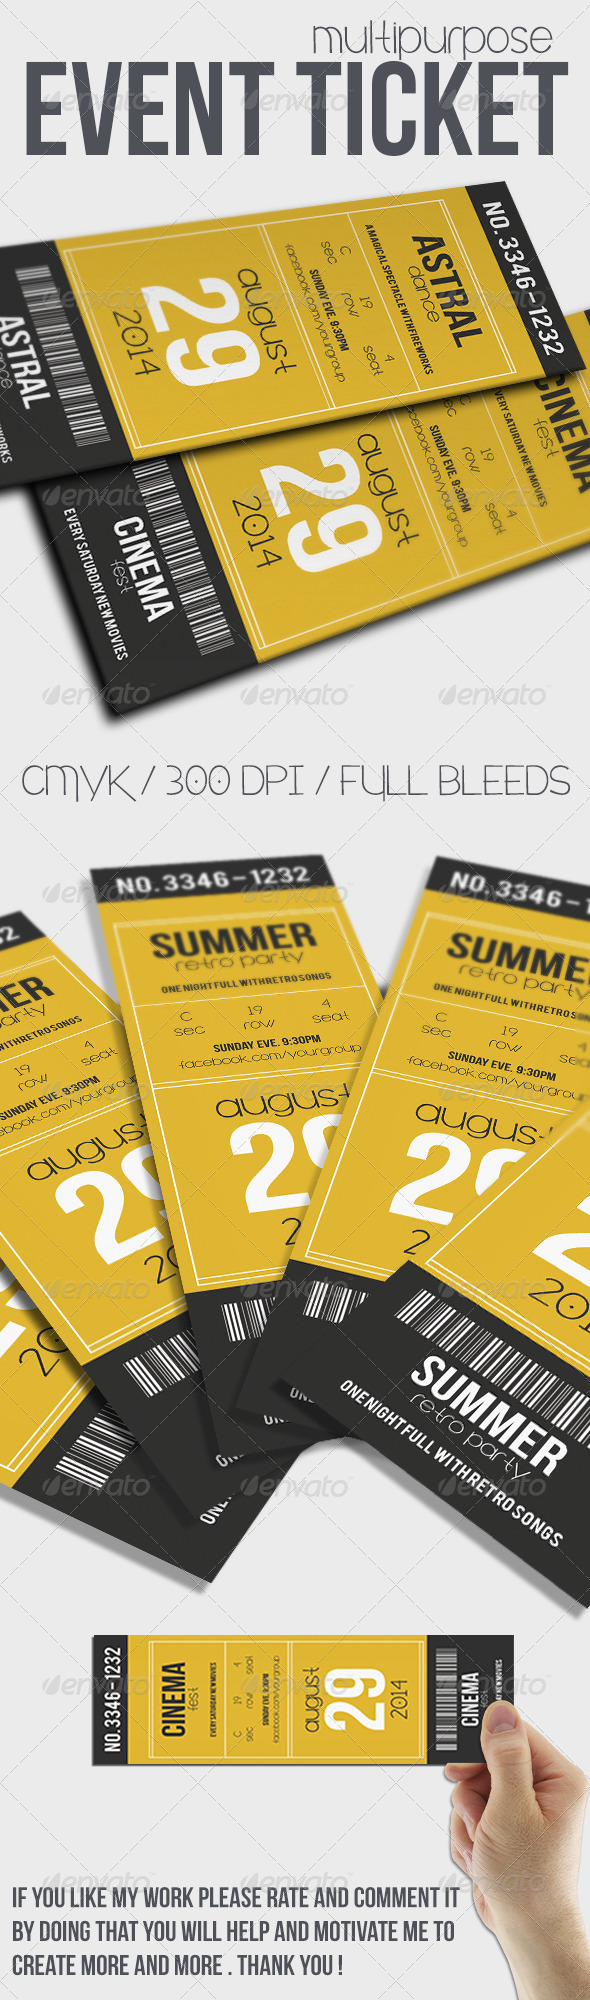 Modern Ticket Graphics, Designs & Templates from GraphicRiver